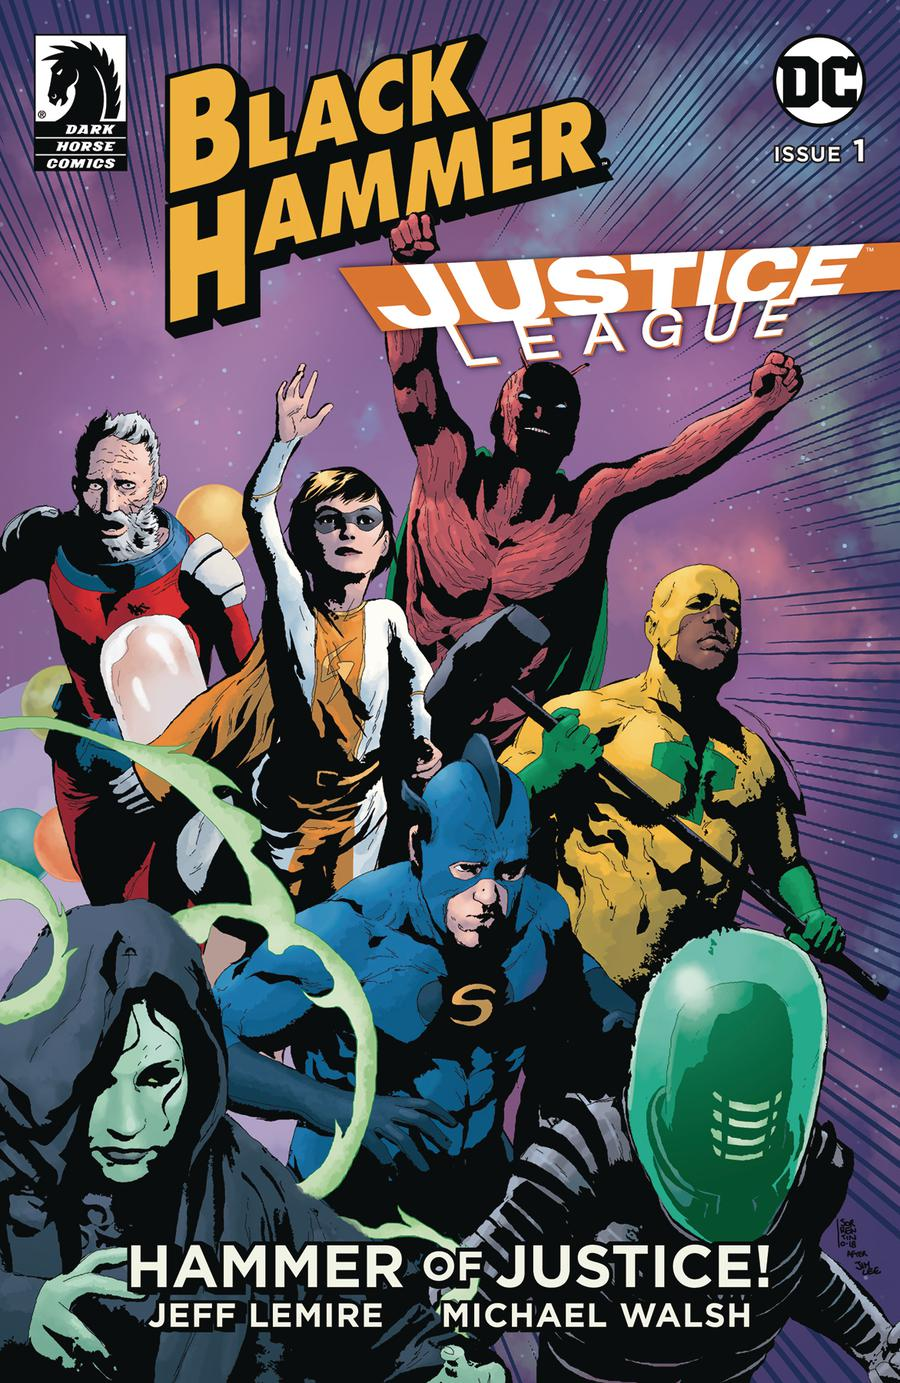 Black Hammer Justice League Hammer Of Justice #1 Cover B Variant Andrea Sorrentino Cover